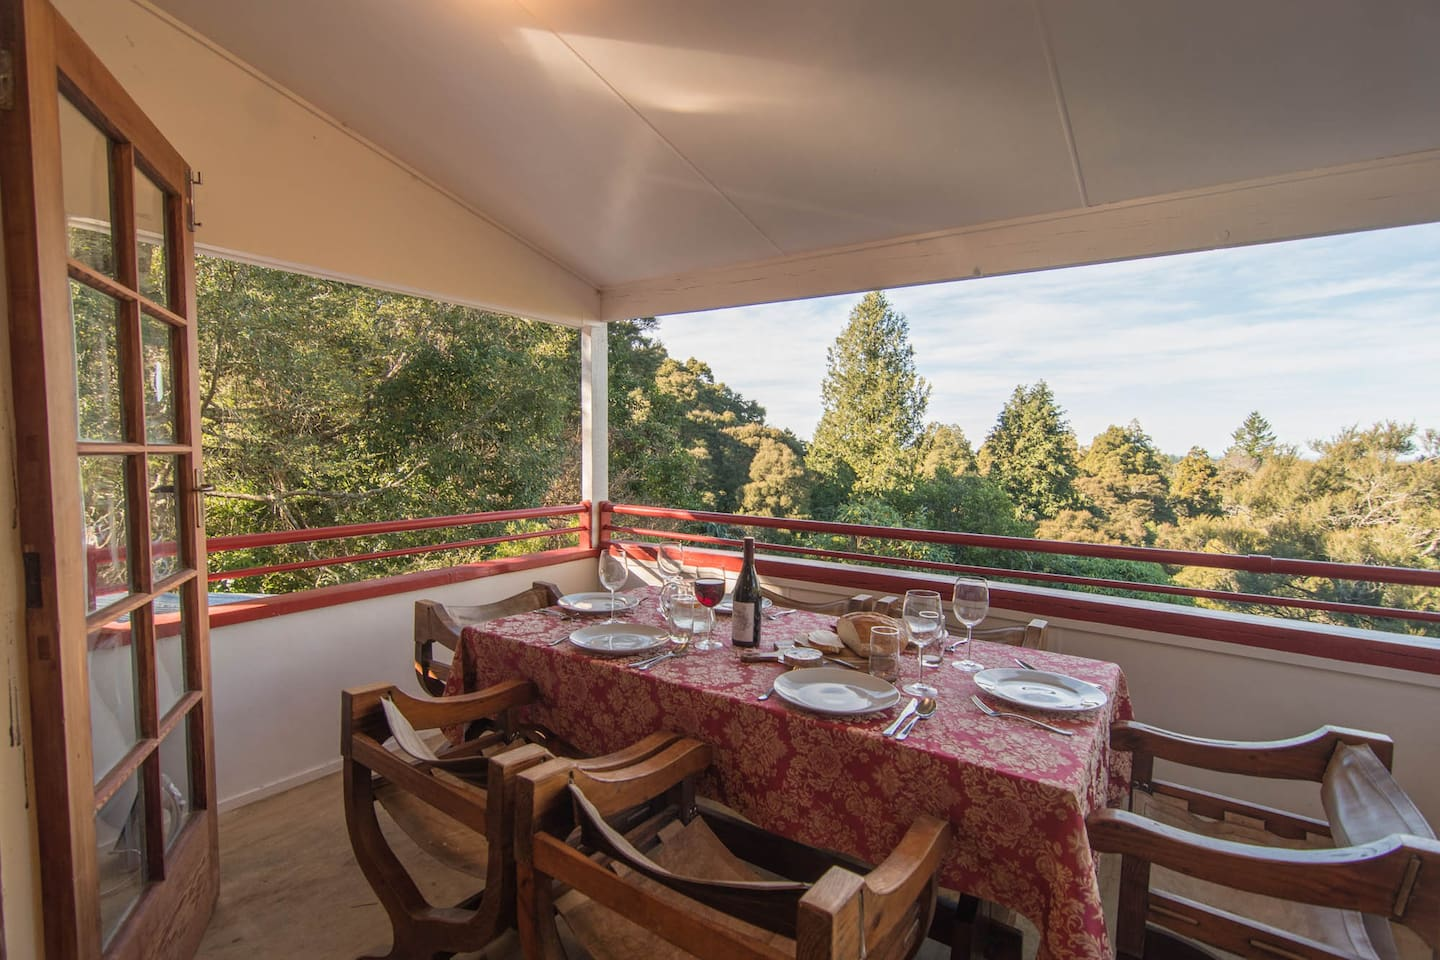 Take in the panoramic views over the tree tops as you dine with friends. Watch the sunrise, listen to the dawn chorus, and enjoy seeing delightful native birds land in the tree tops alongside you.